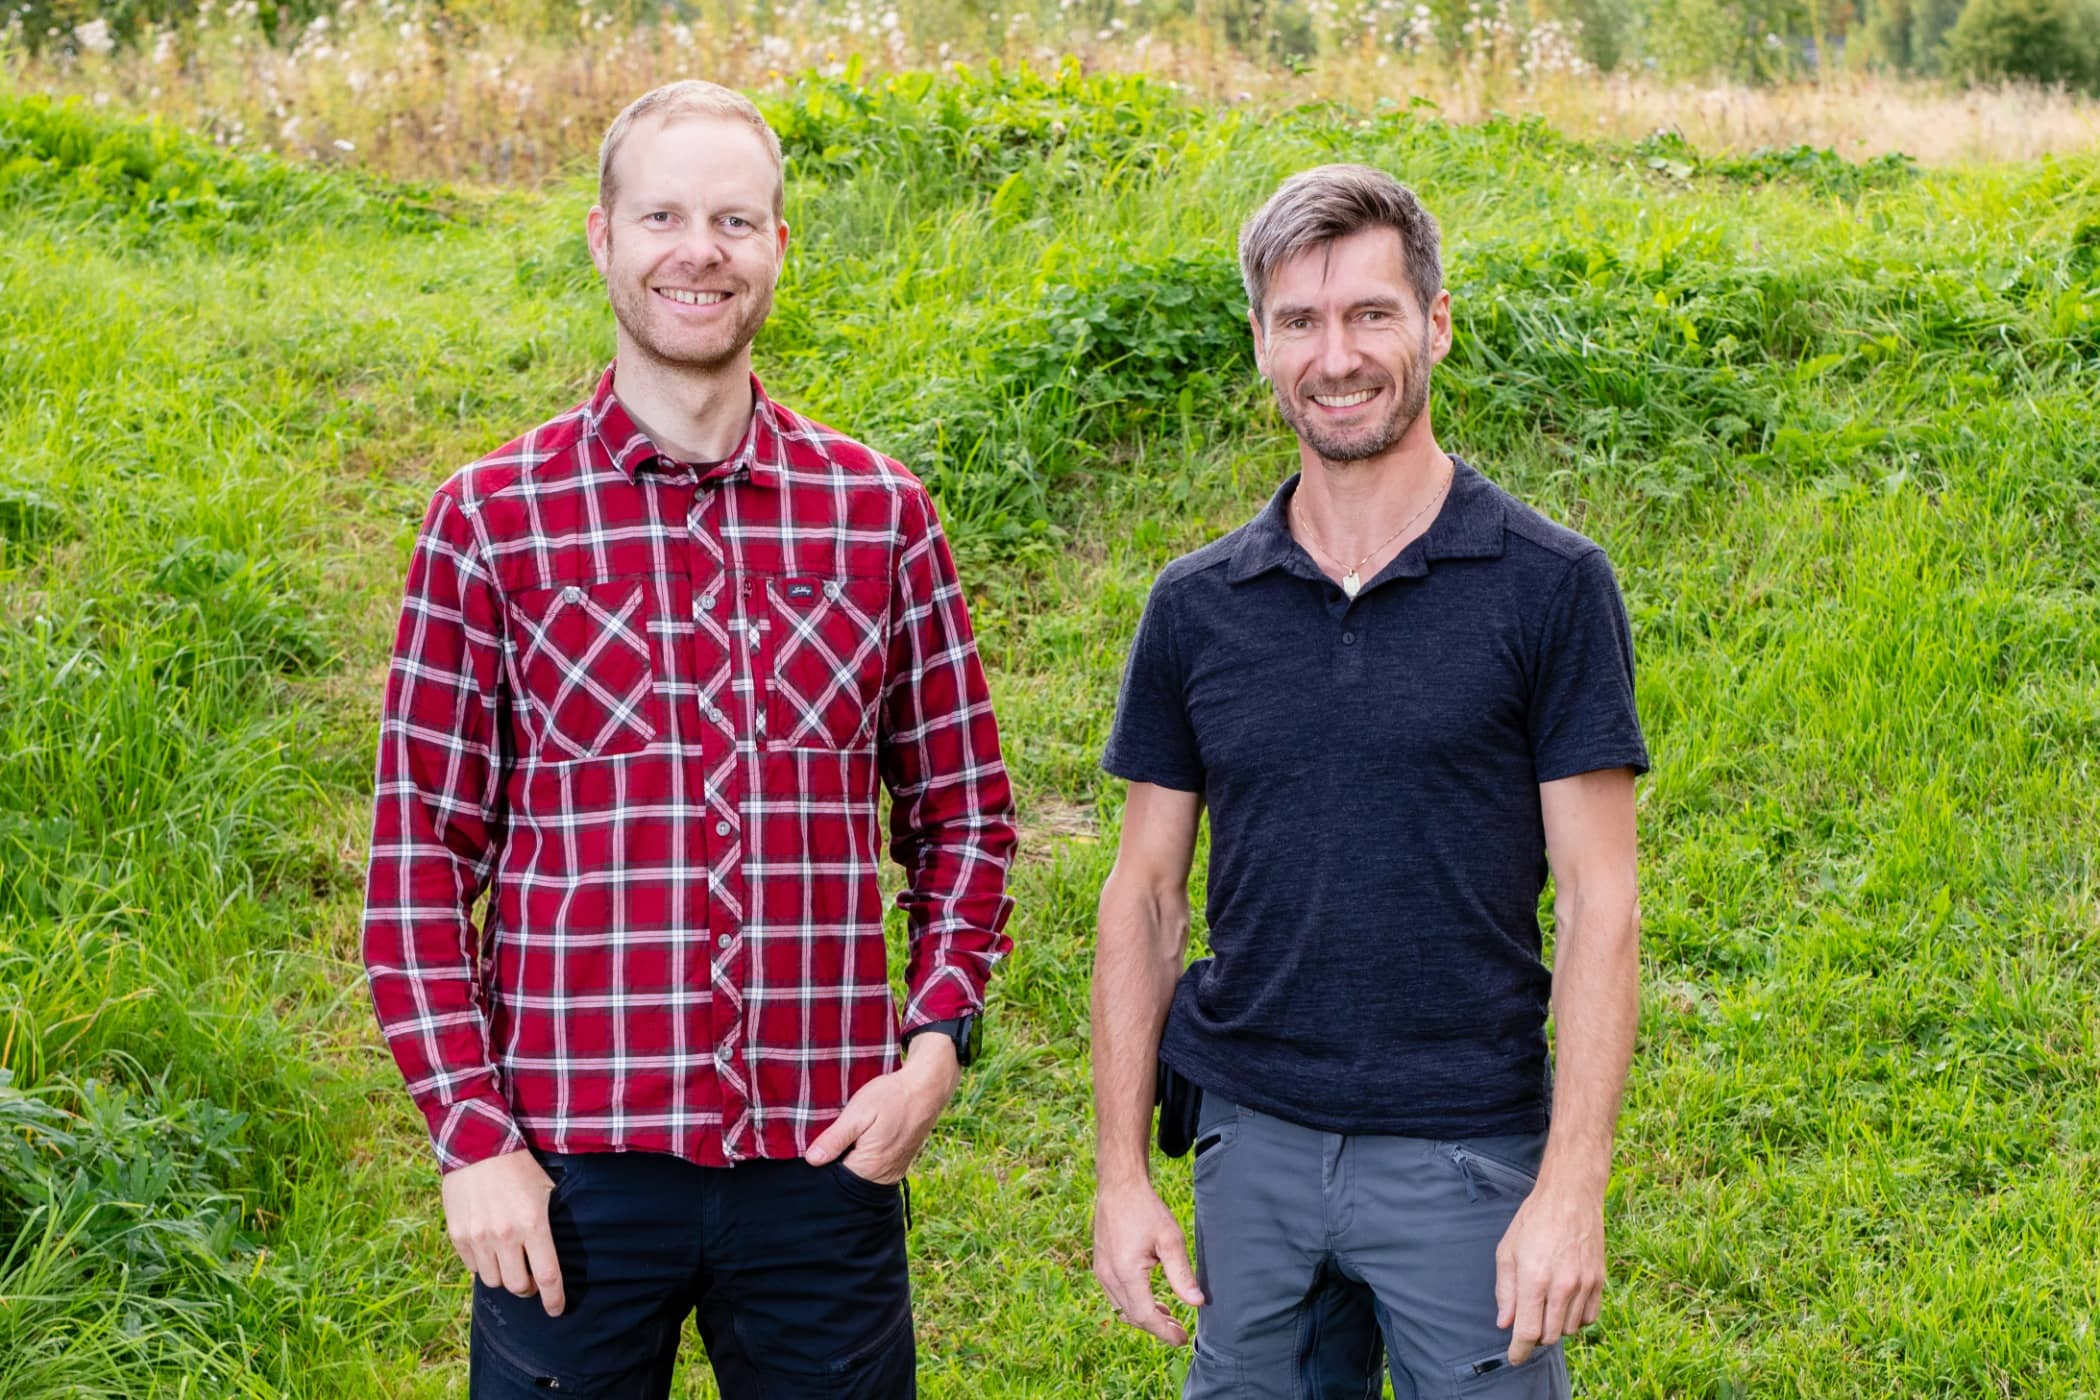 Plaid, Grass, Red, Green, People